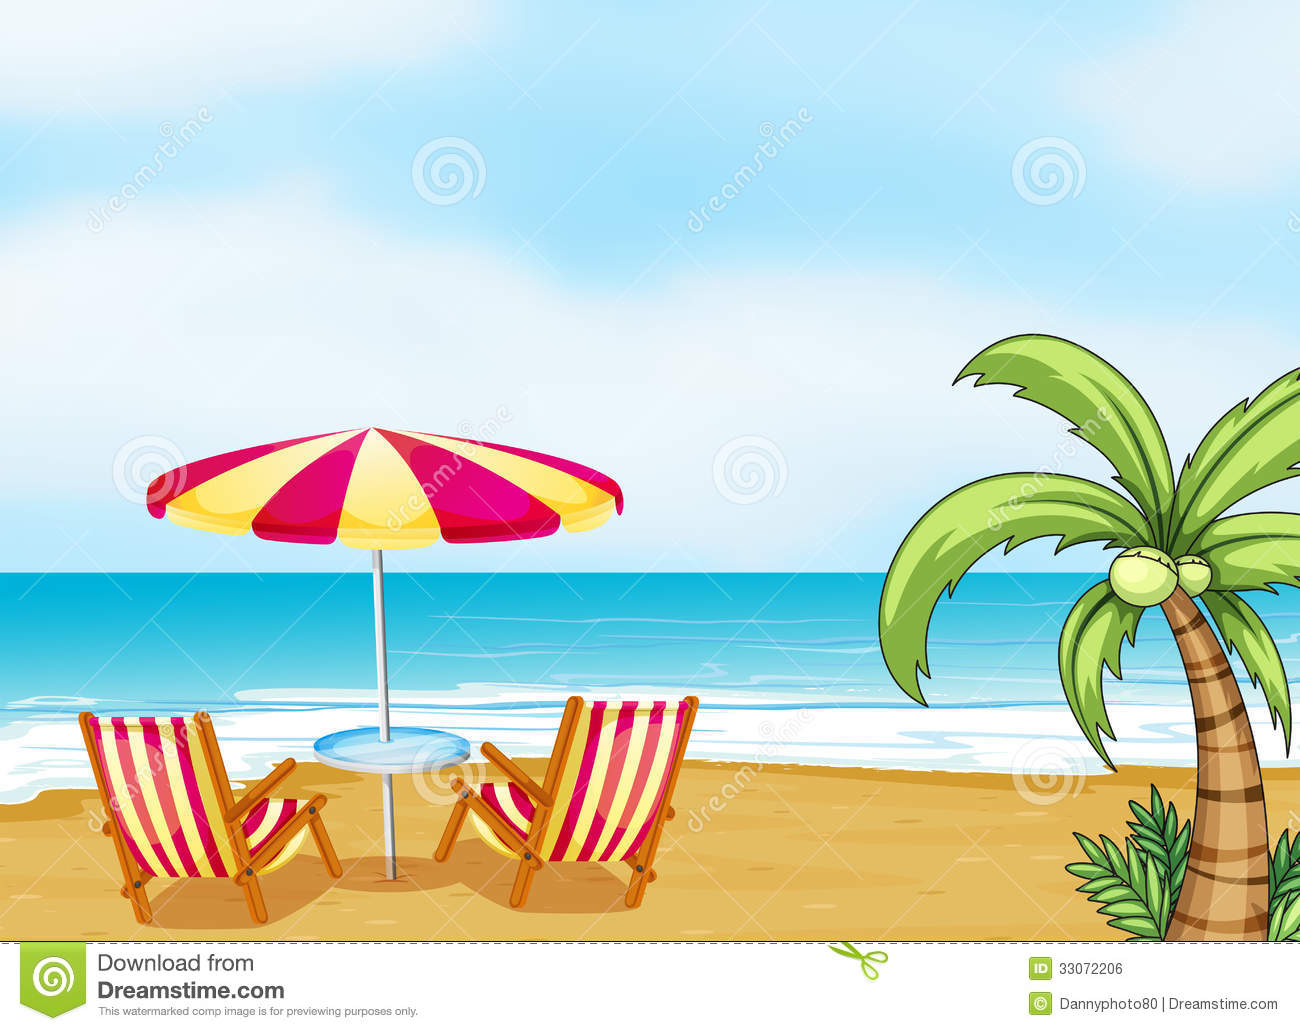 Beach with chairs - The Beach With An Umbrella And Chairs